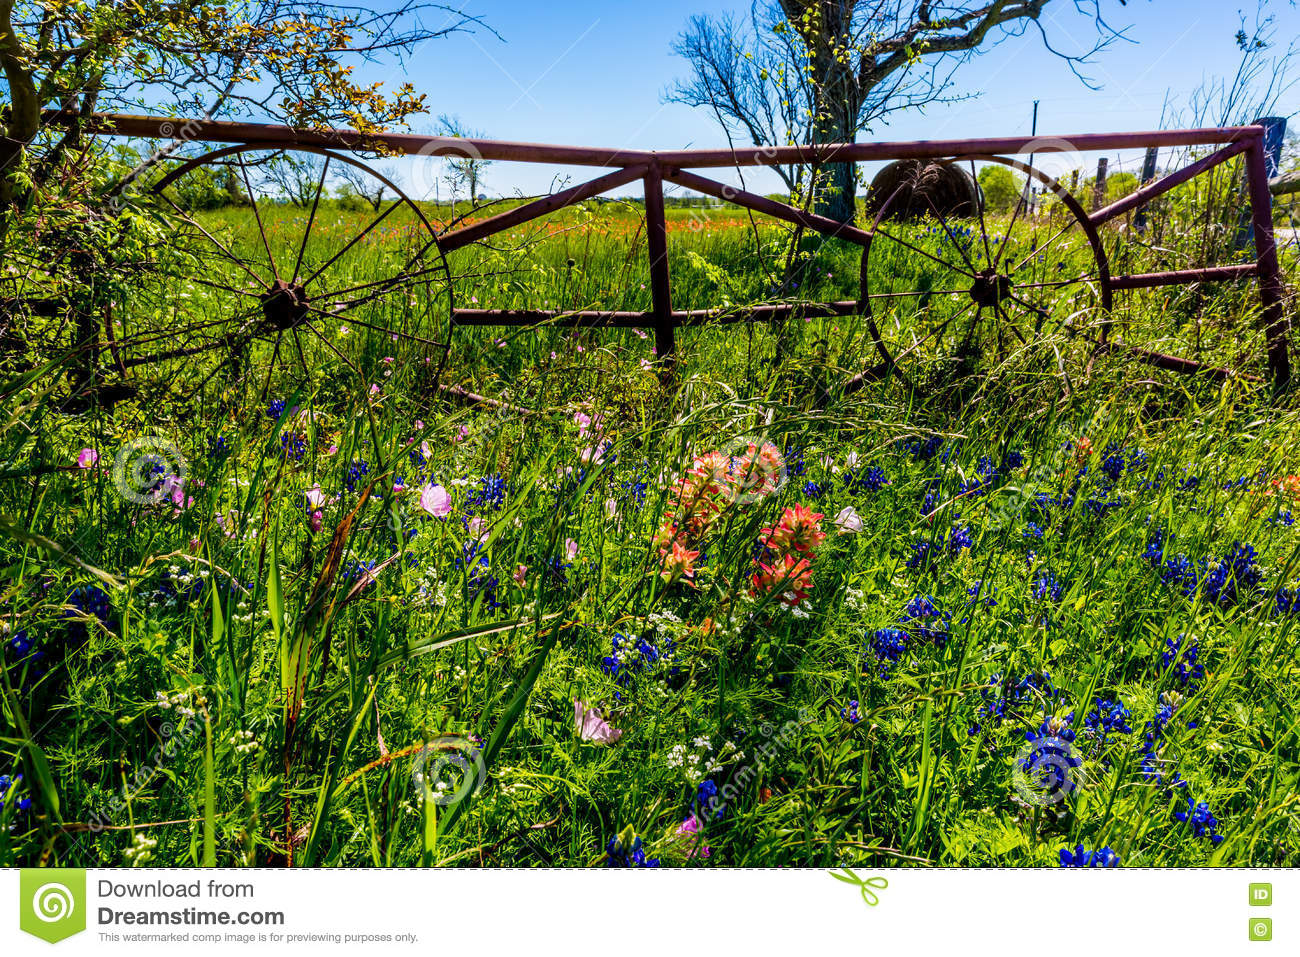 Download A Meadow With Round Hay Bales And Fresh Texas Wildflowers Stock Photo - Image of outdoor, animal: 76215466